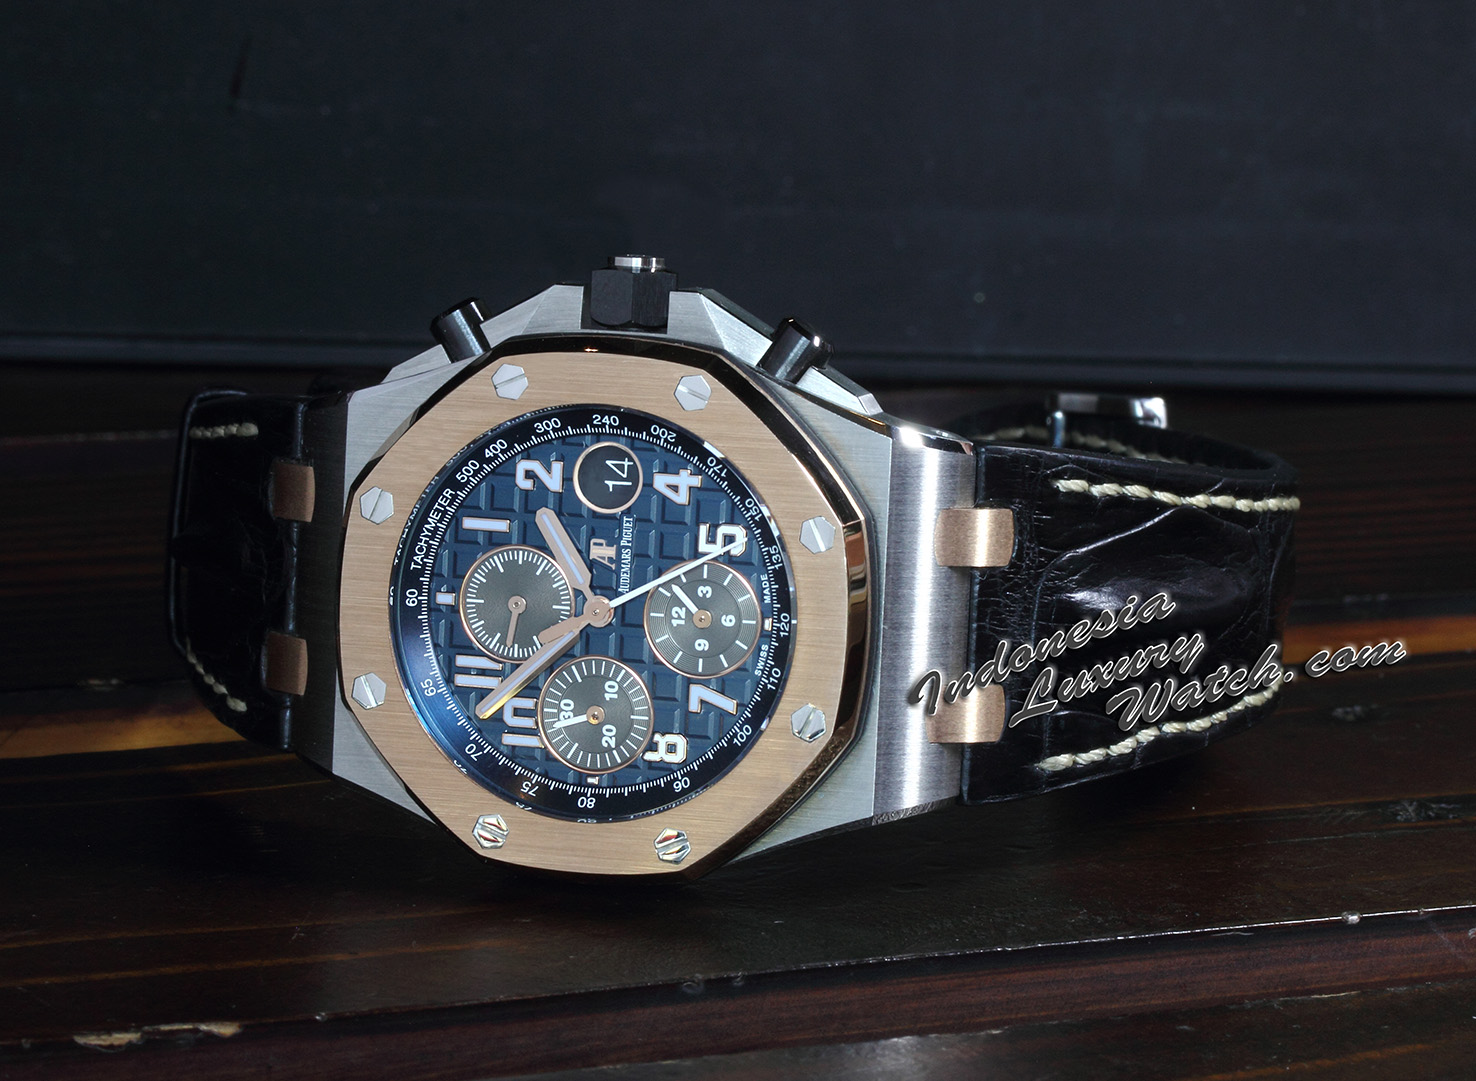 Audemars Piguet Royal Oak Offshore 26471SR OO D101CR 01 Two Tone Limited Edition Bucherer